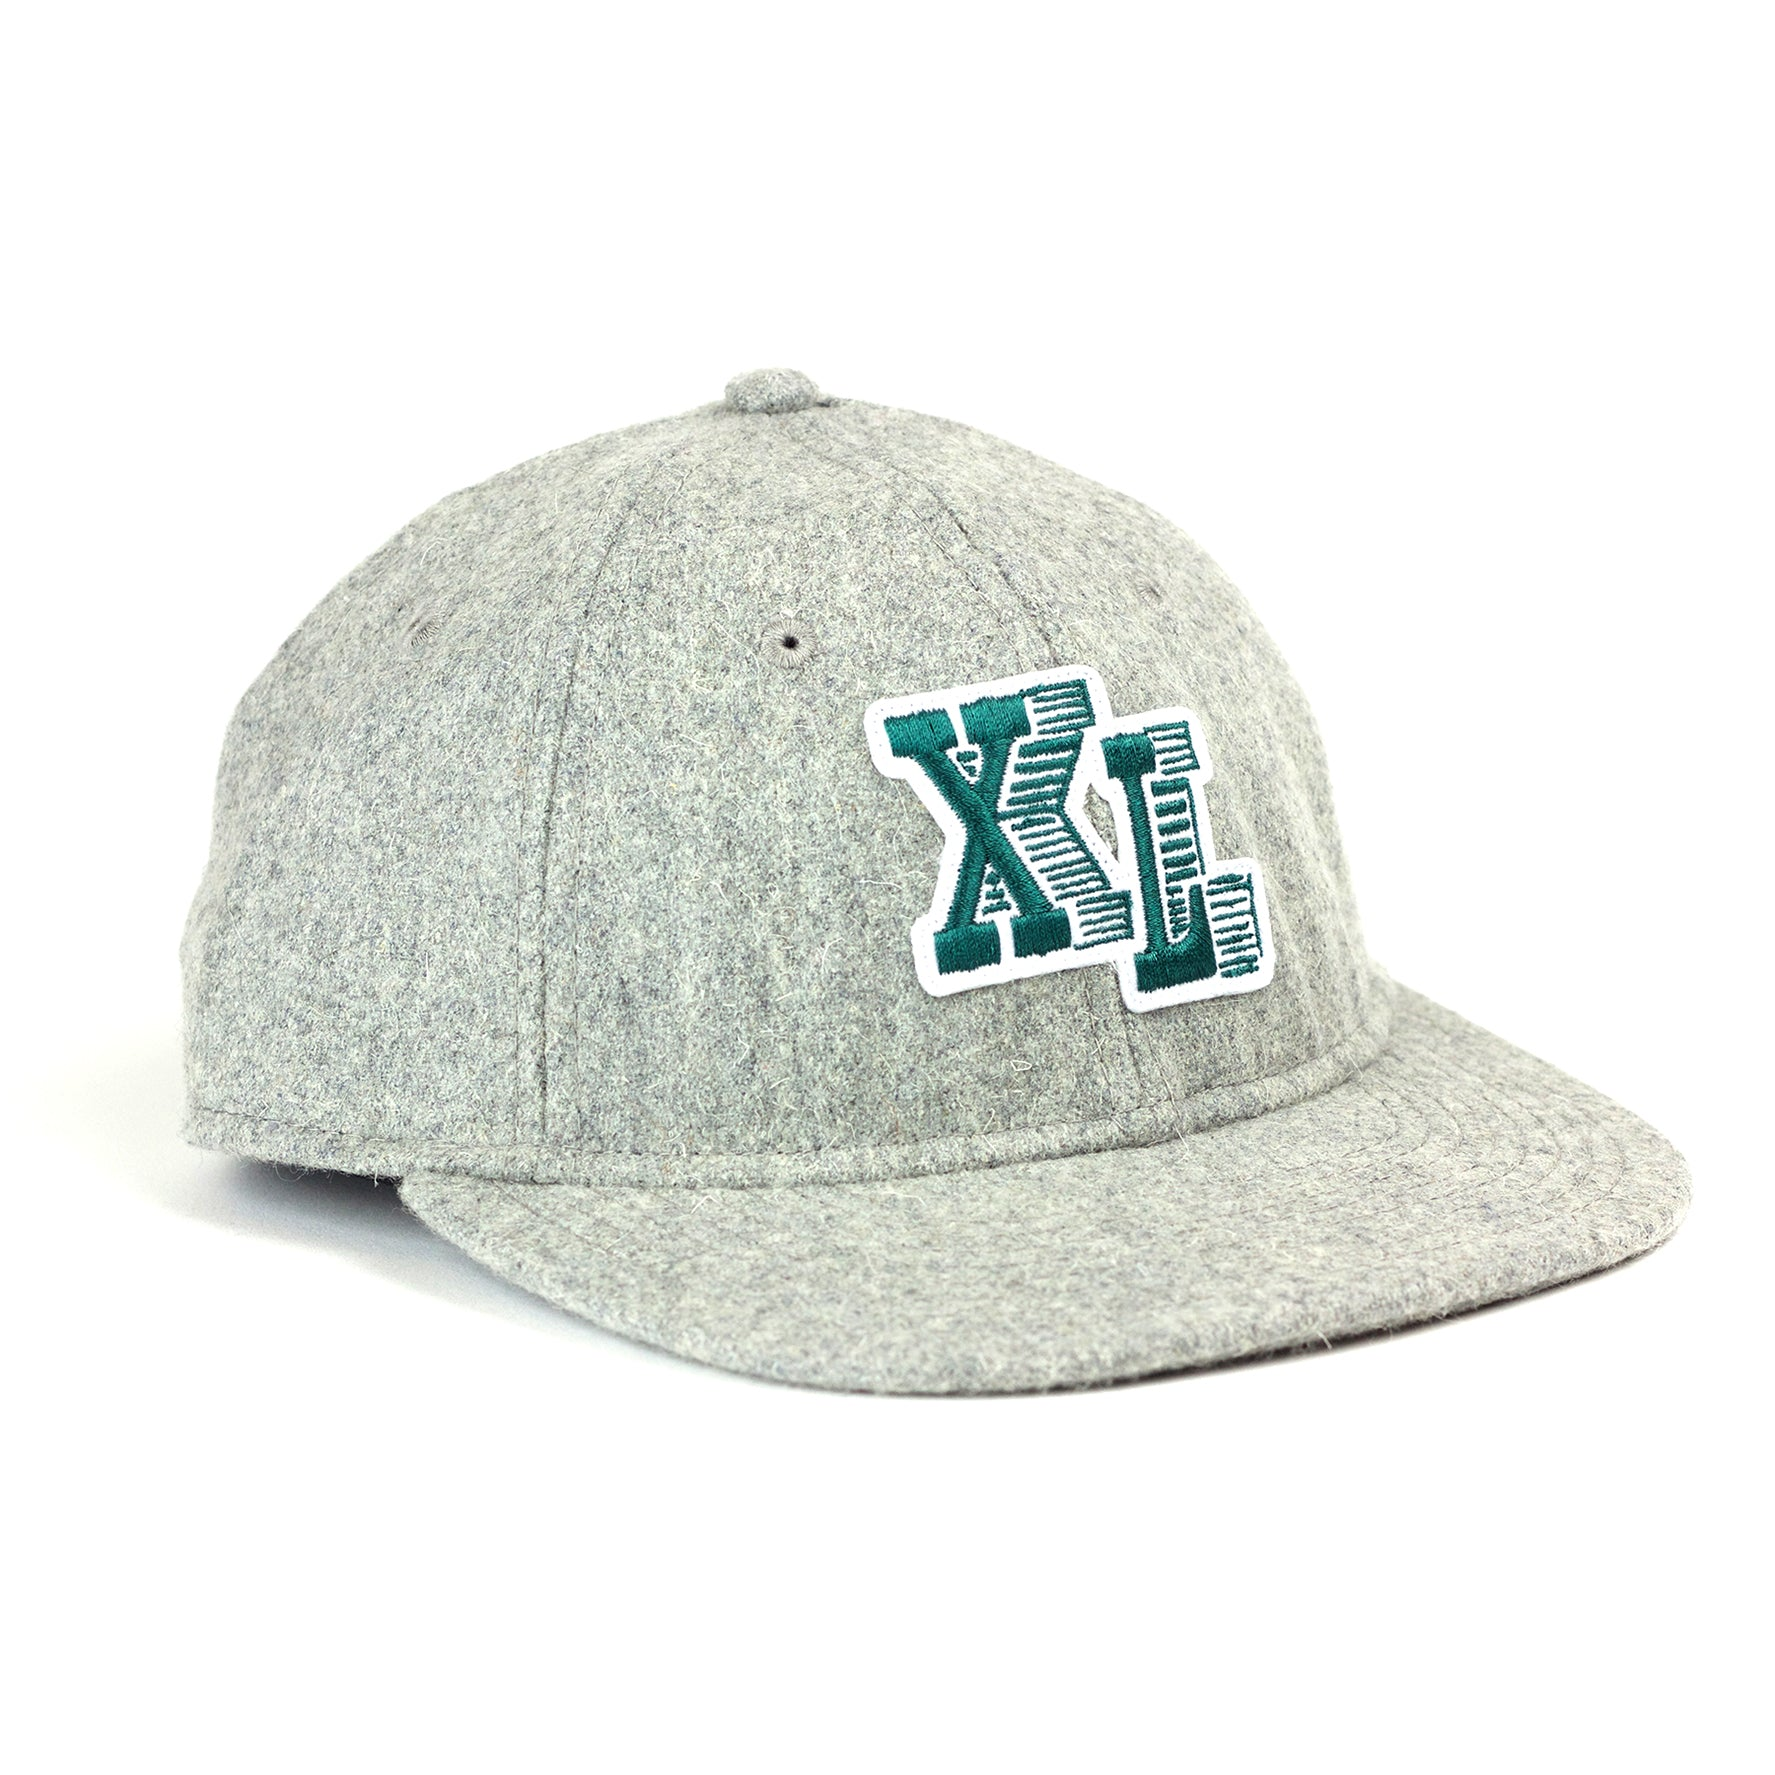 SALOON NEW ERA HAT - X-Large Clothing 3acae212470